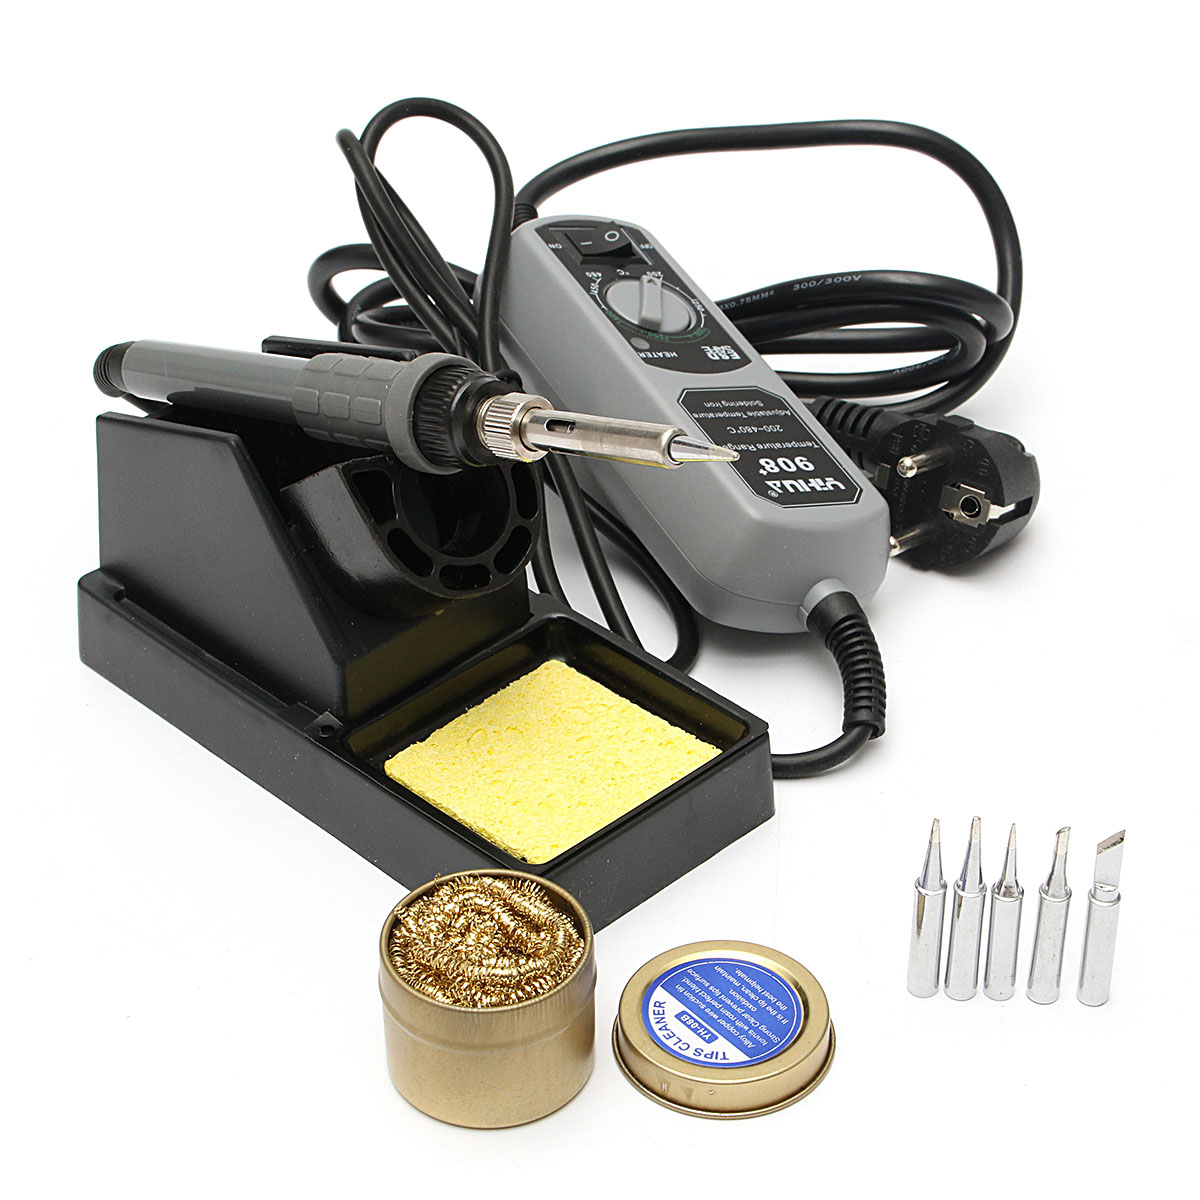 YIHUA 908+ 220V 60W Electric Iron Soldering Station Wel